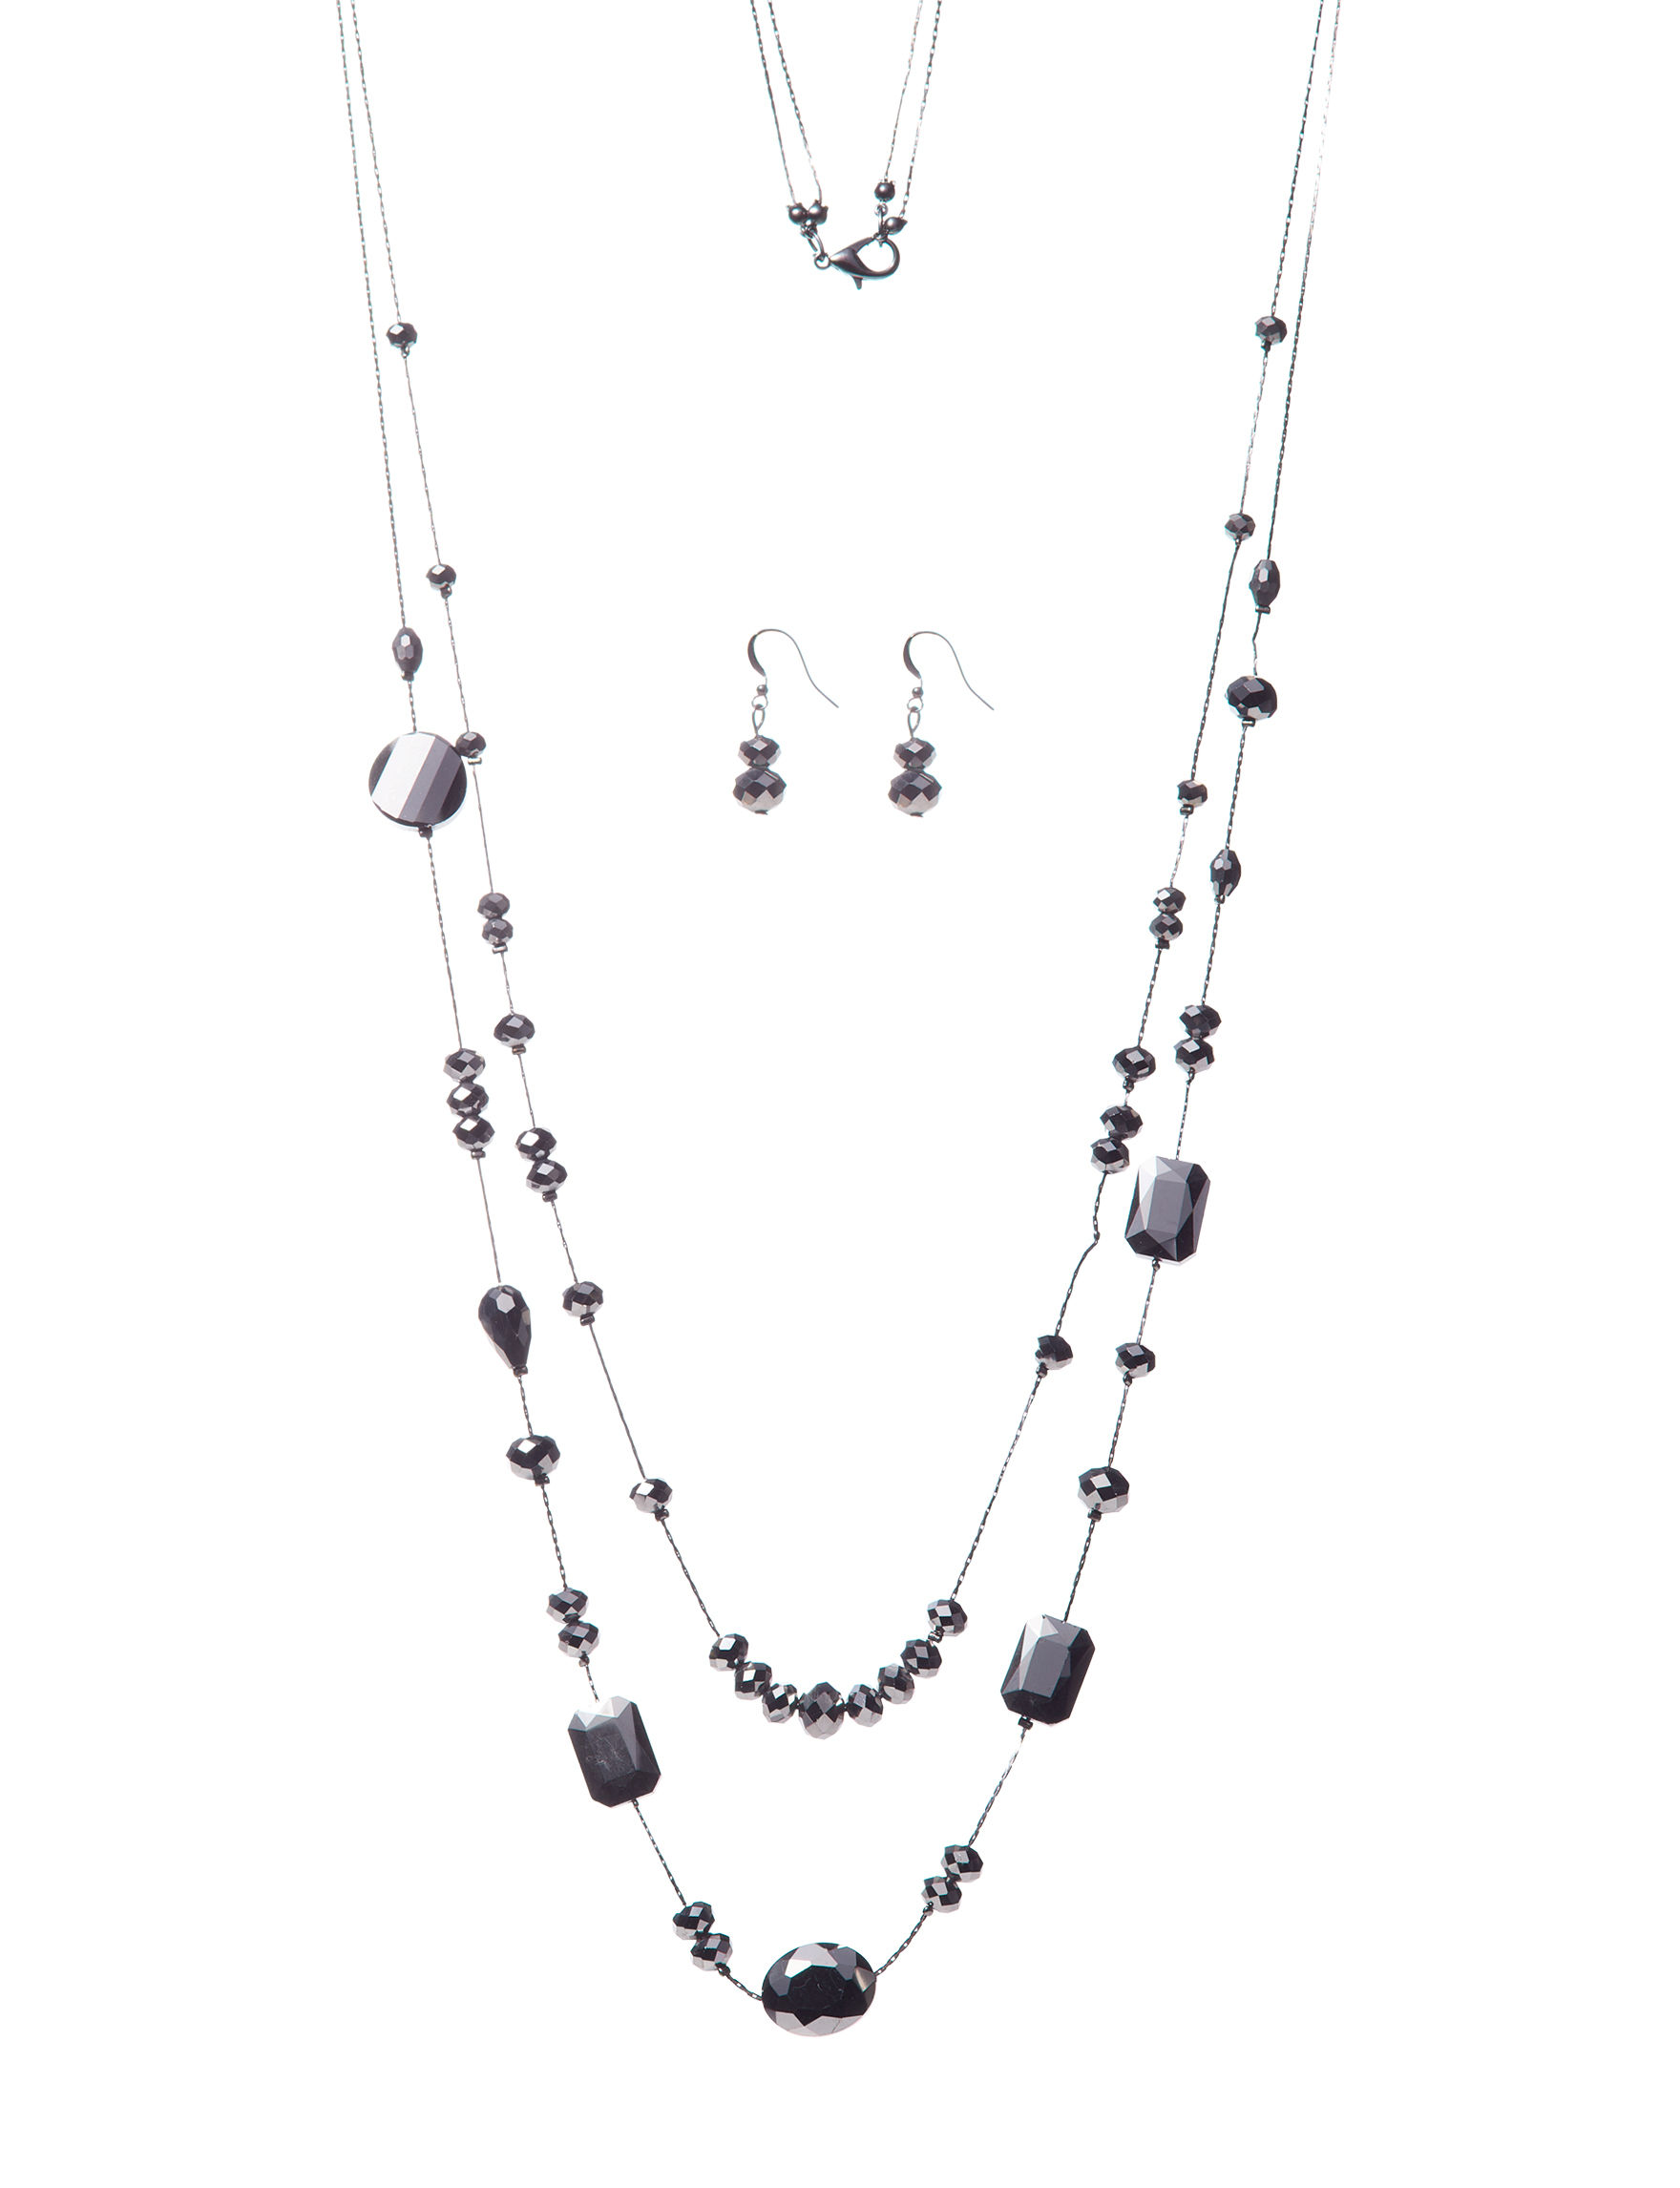 Hannah Hematite Earrings Necklaces & Pendants Fashion Jewelry